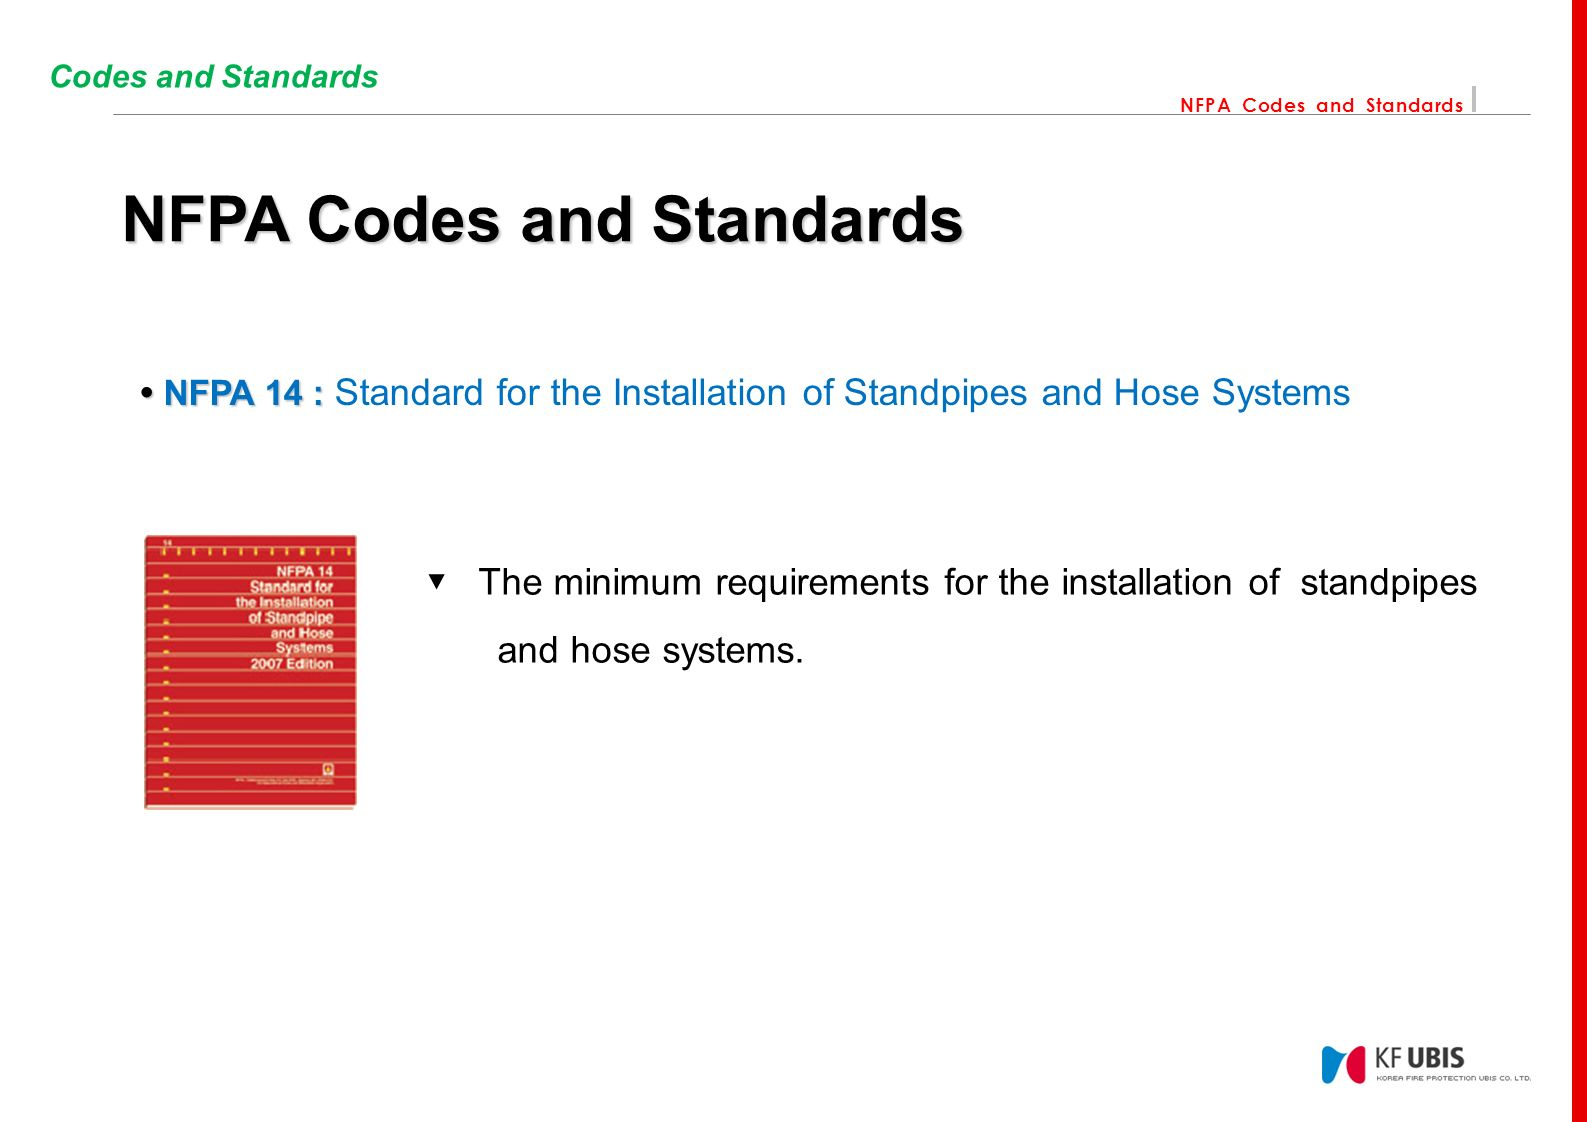 NFPA Codes and Standards Contents 01 Introduction Who is the NFPA